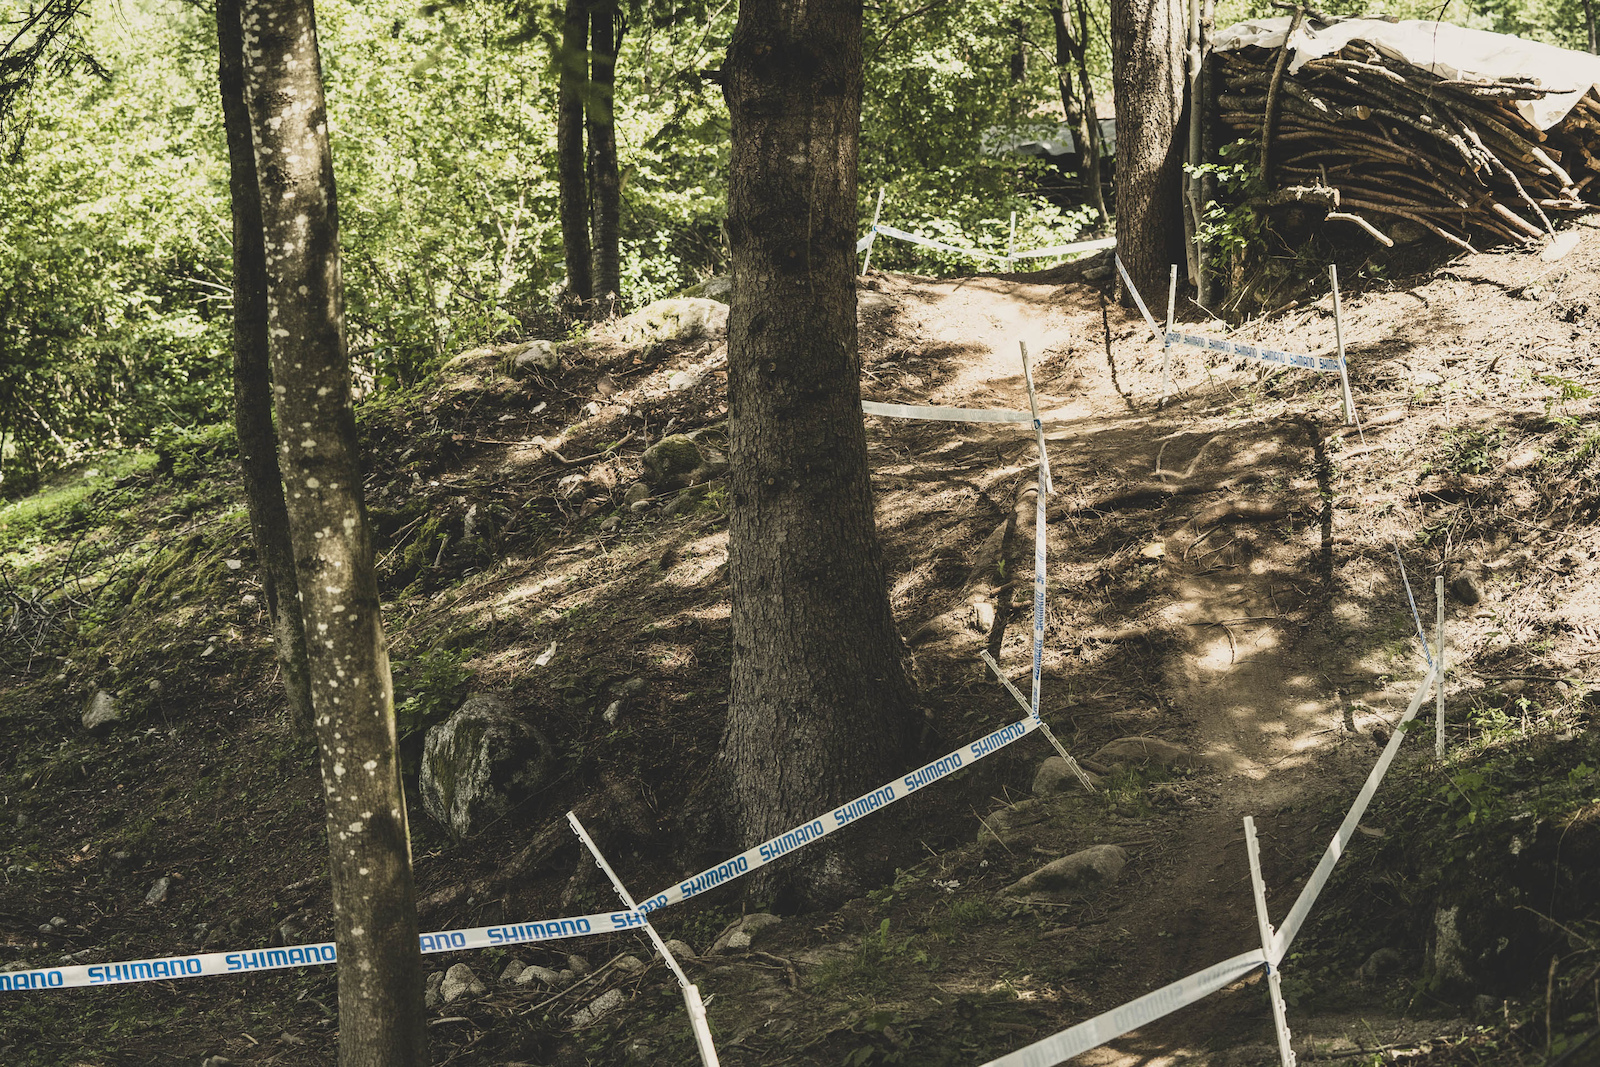 Little descents end in loamy pits.